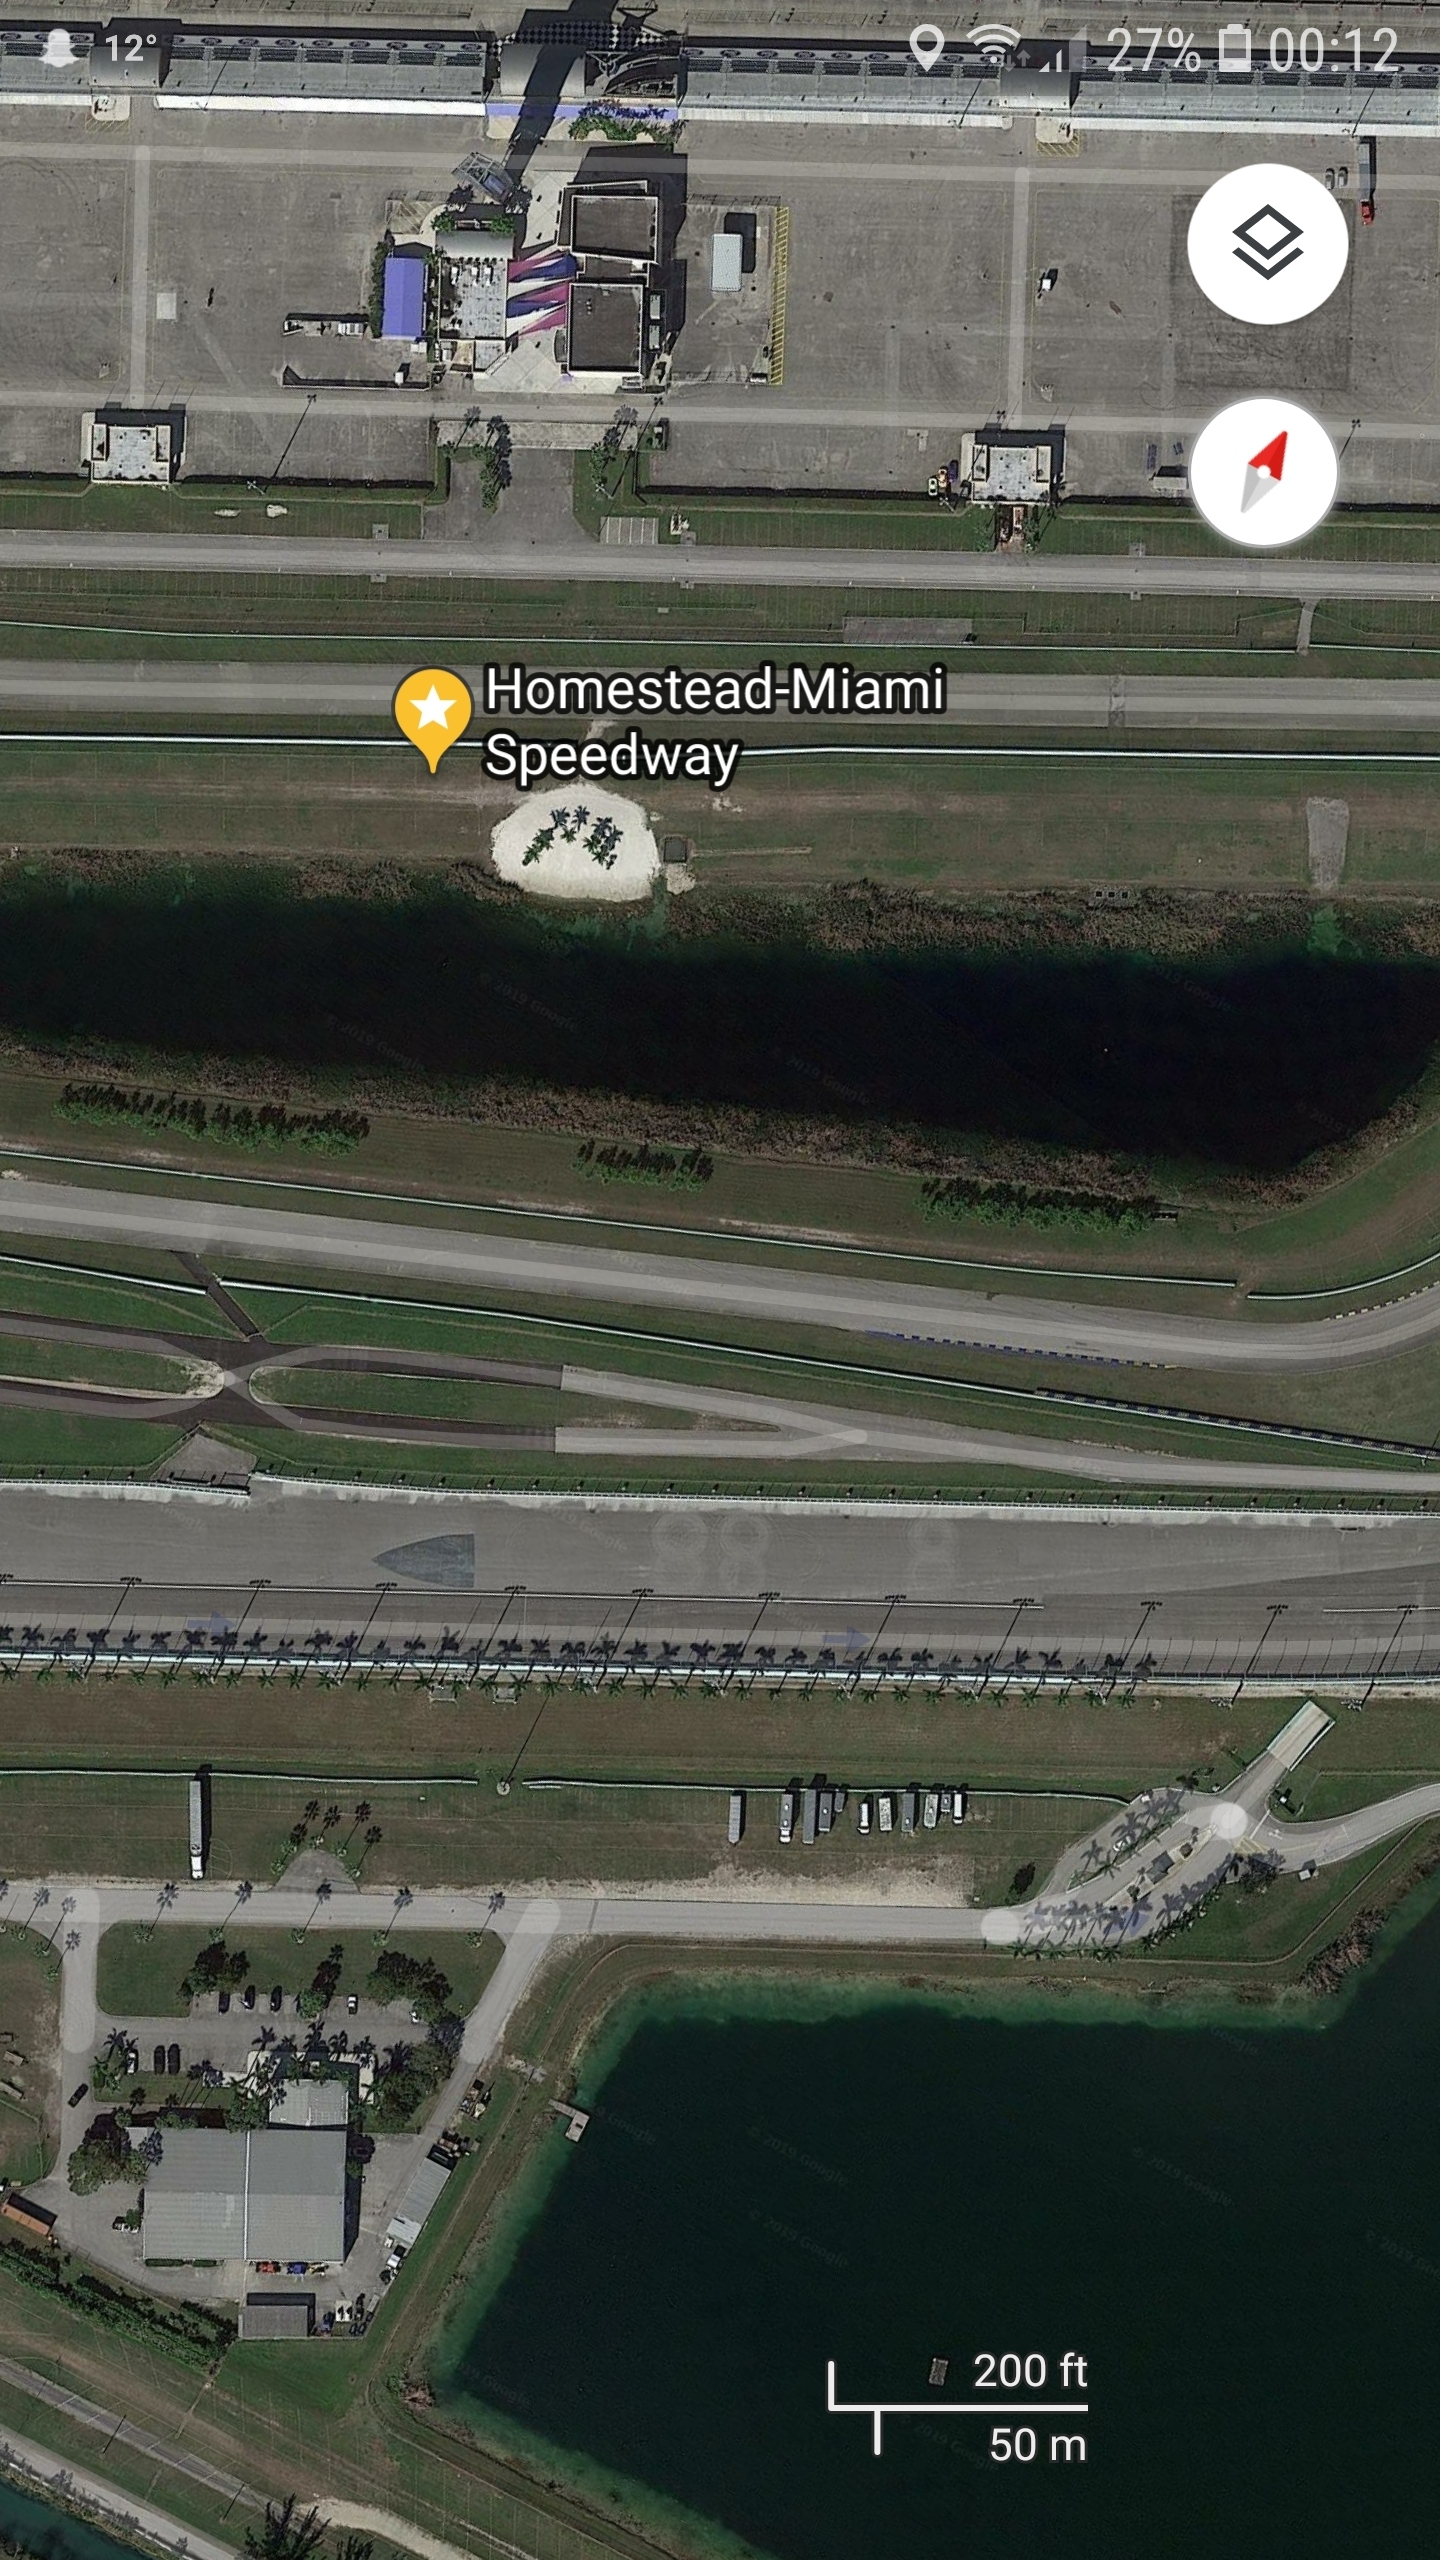 Homestead Miami Speedway'S Satellite Image On Google Earth for Miami Map Google Earth